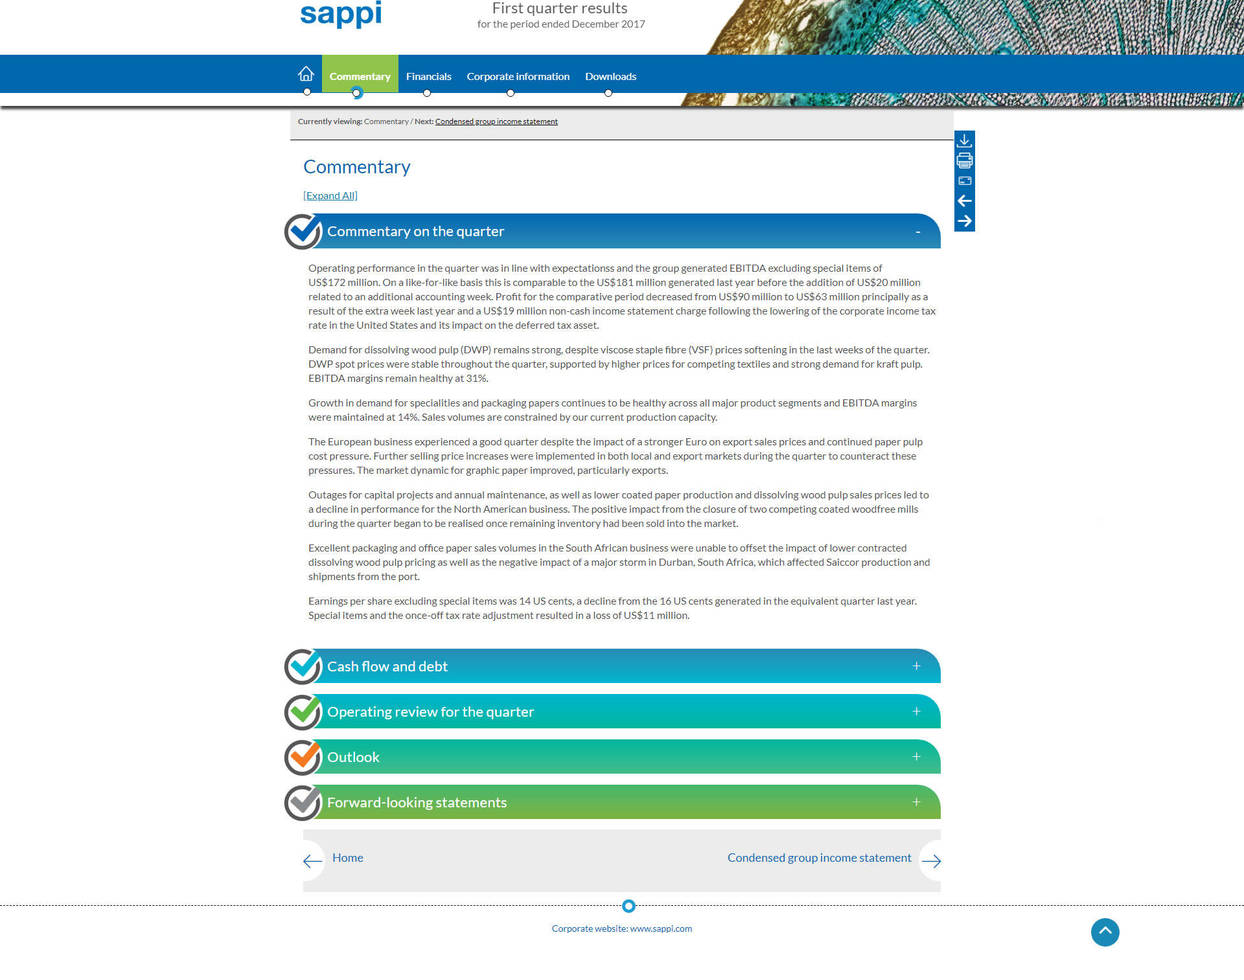 Sappi online results commentary